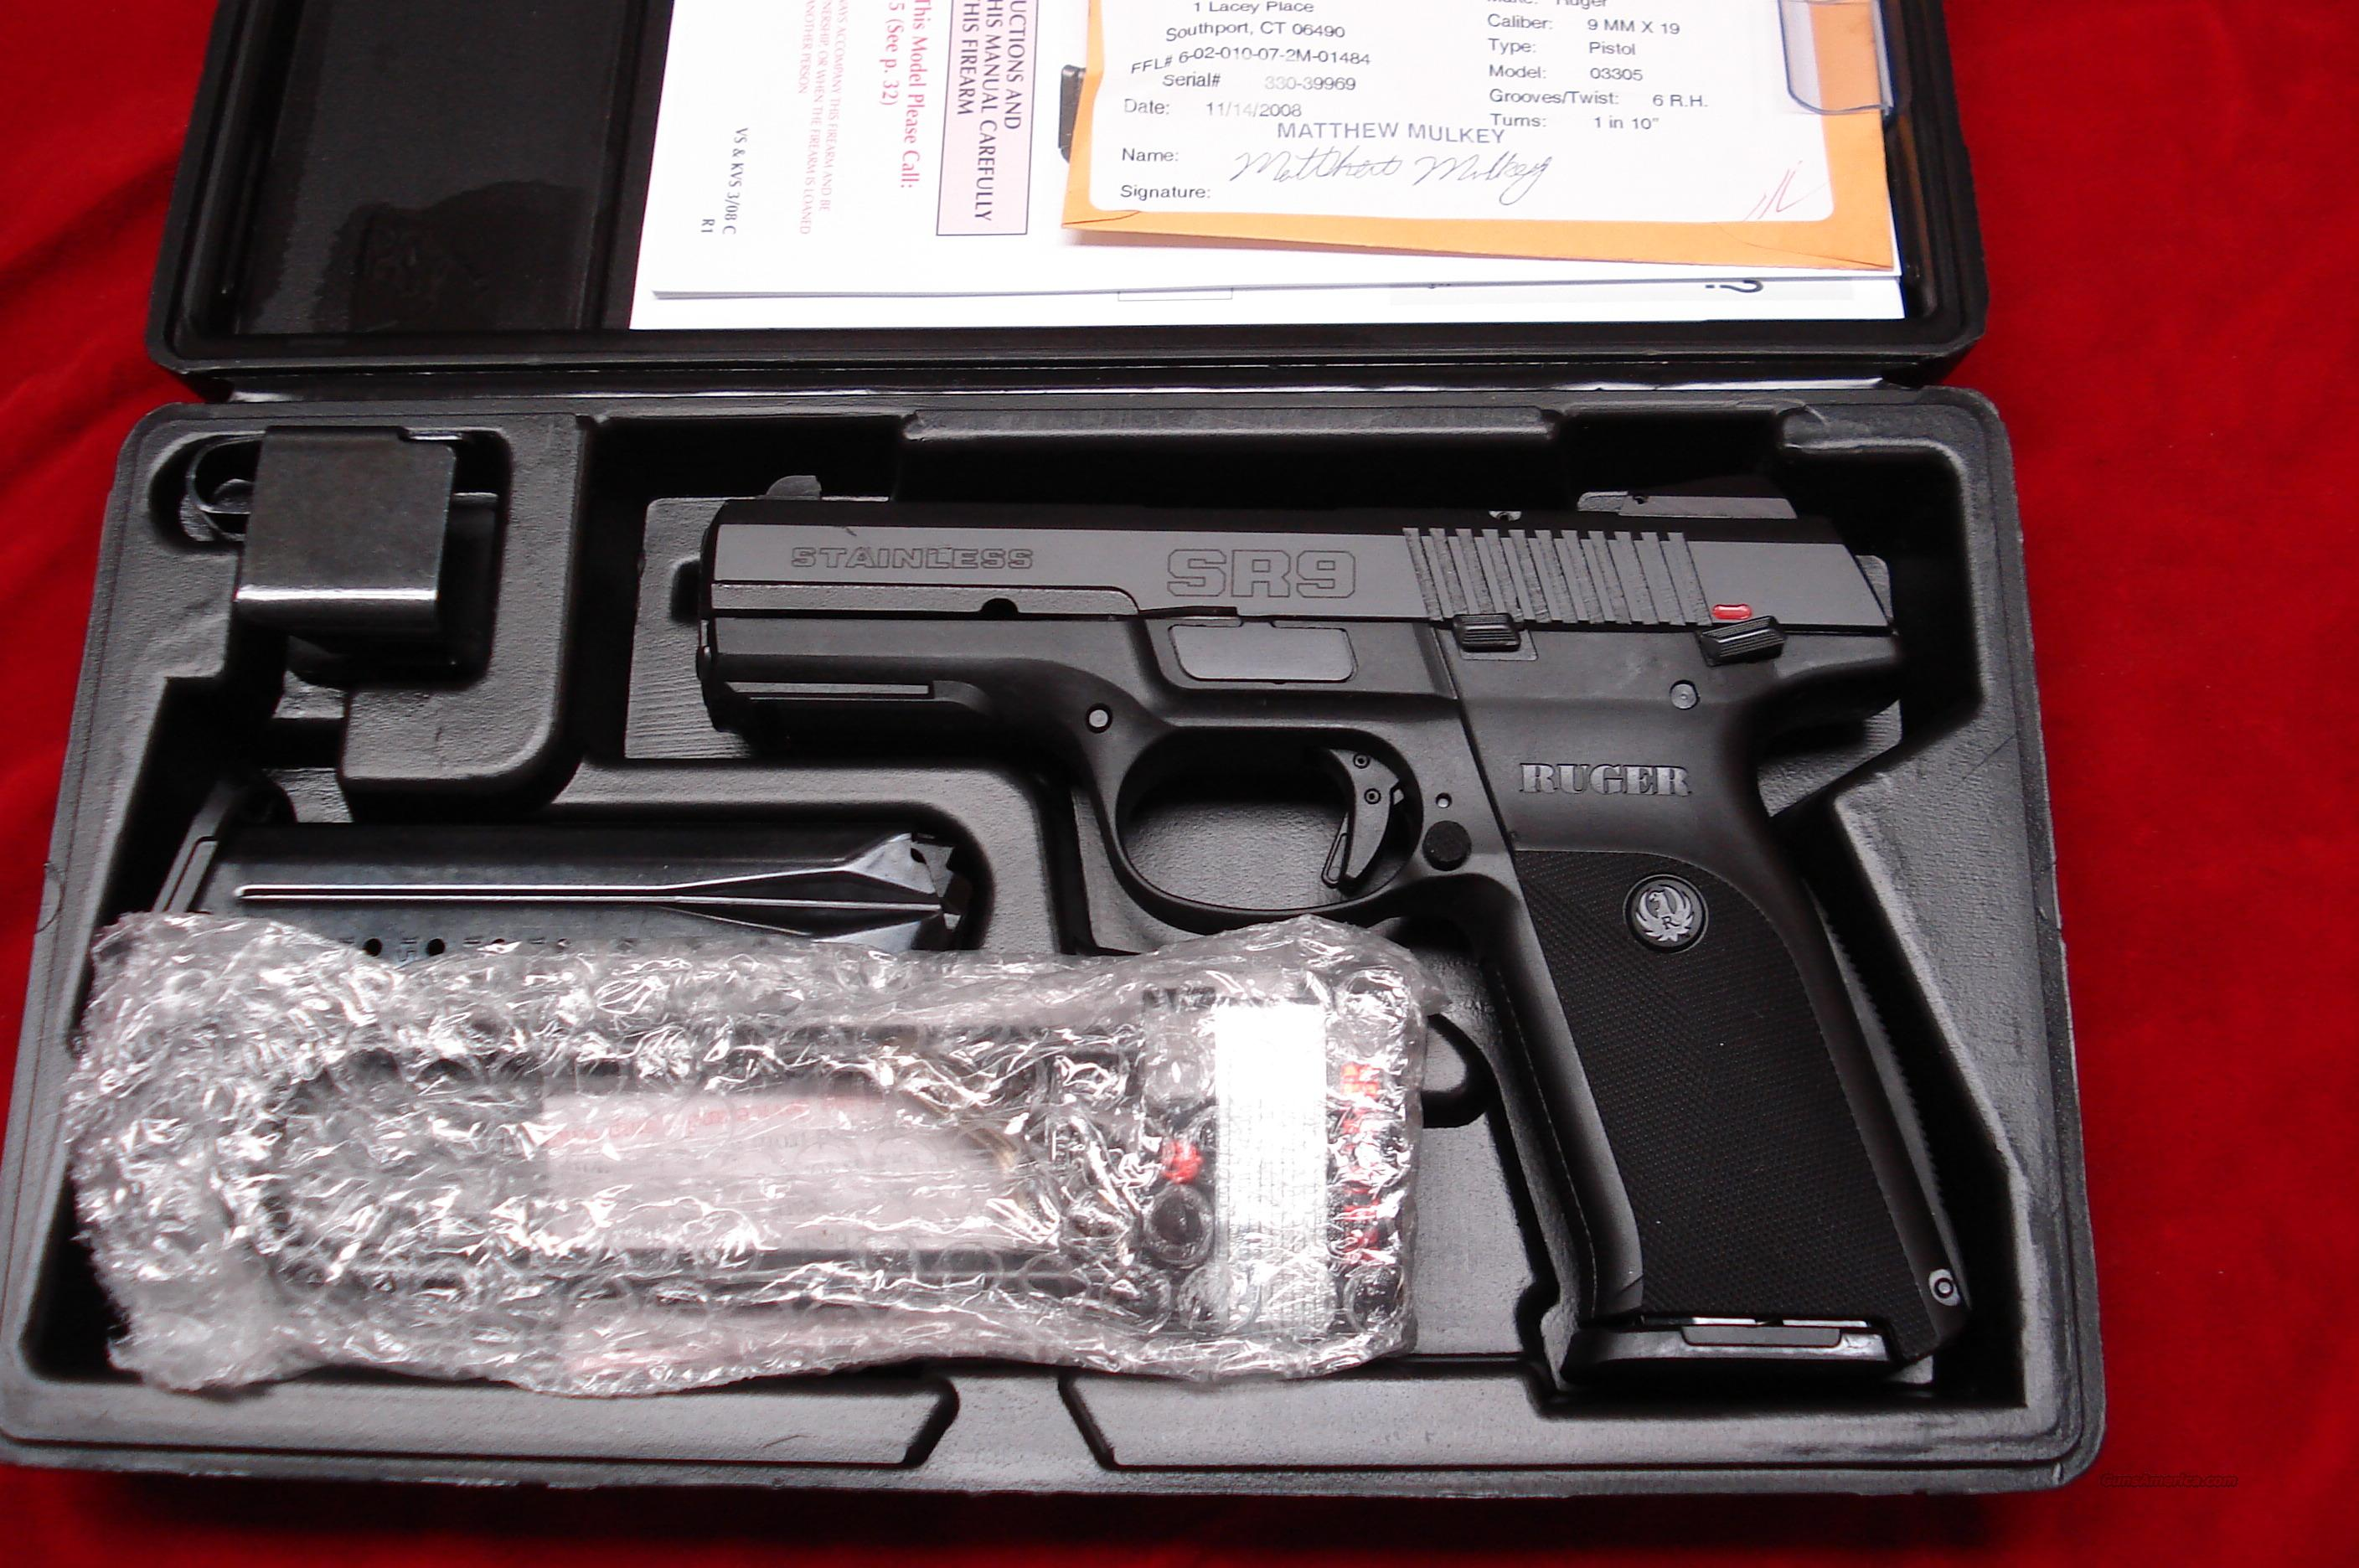 RUGER **NEW RELEASE** SR9 BLACKENED STAINLESS  NEW (IN STOCK)!  Guns > Pistols > Ruger Semi-Auto Pistols > SR9